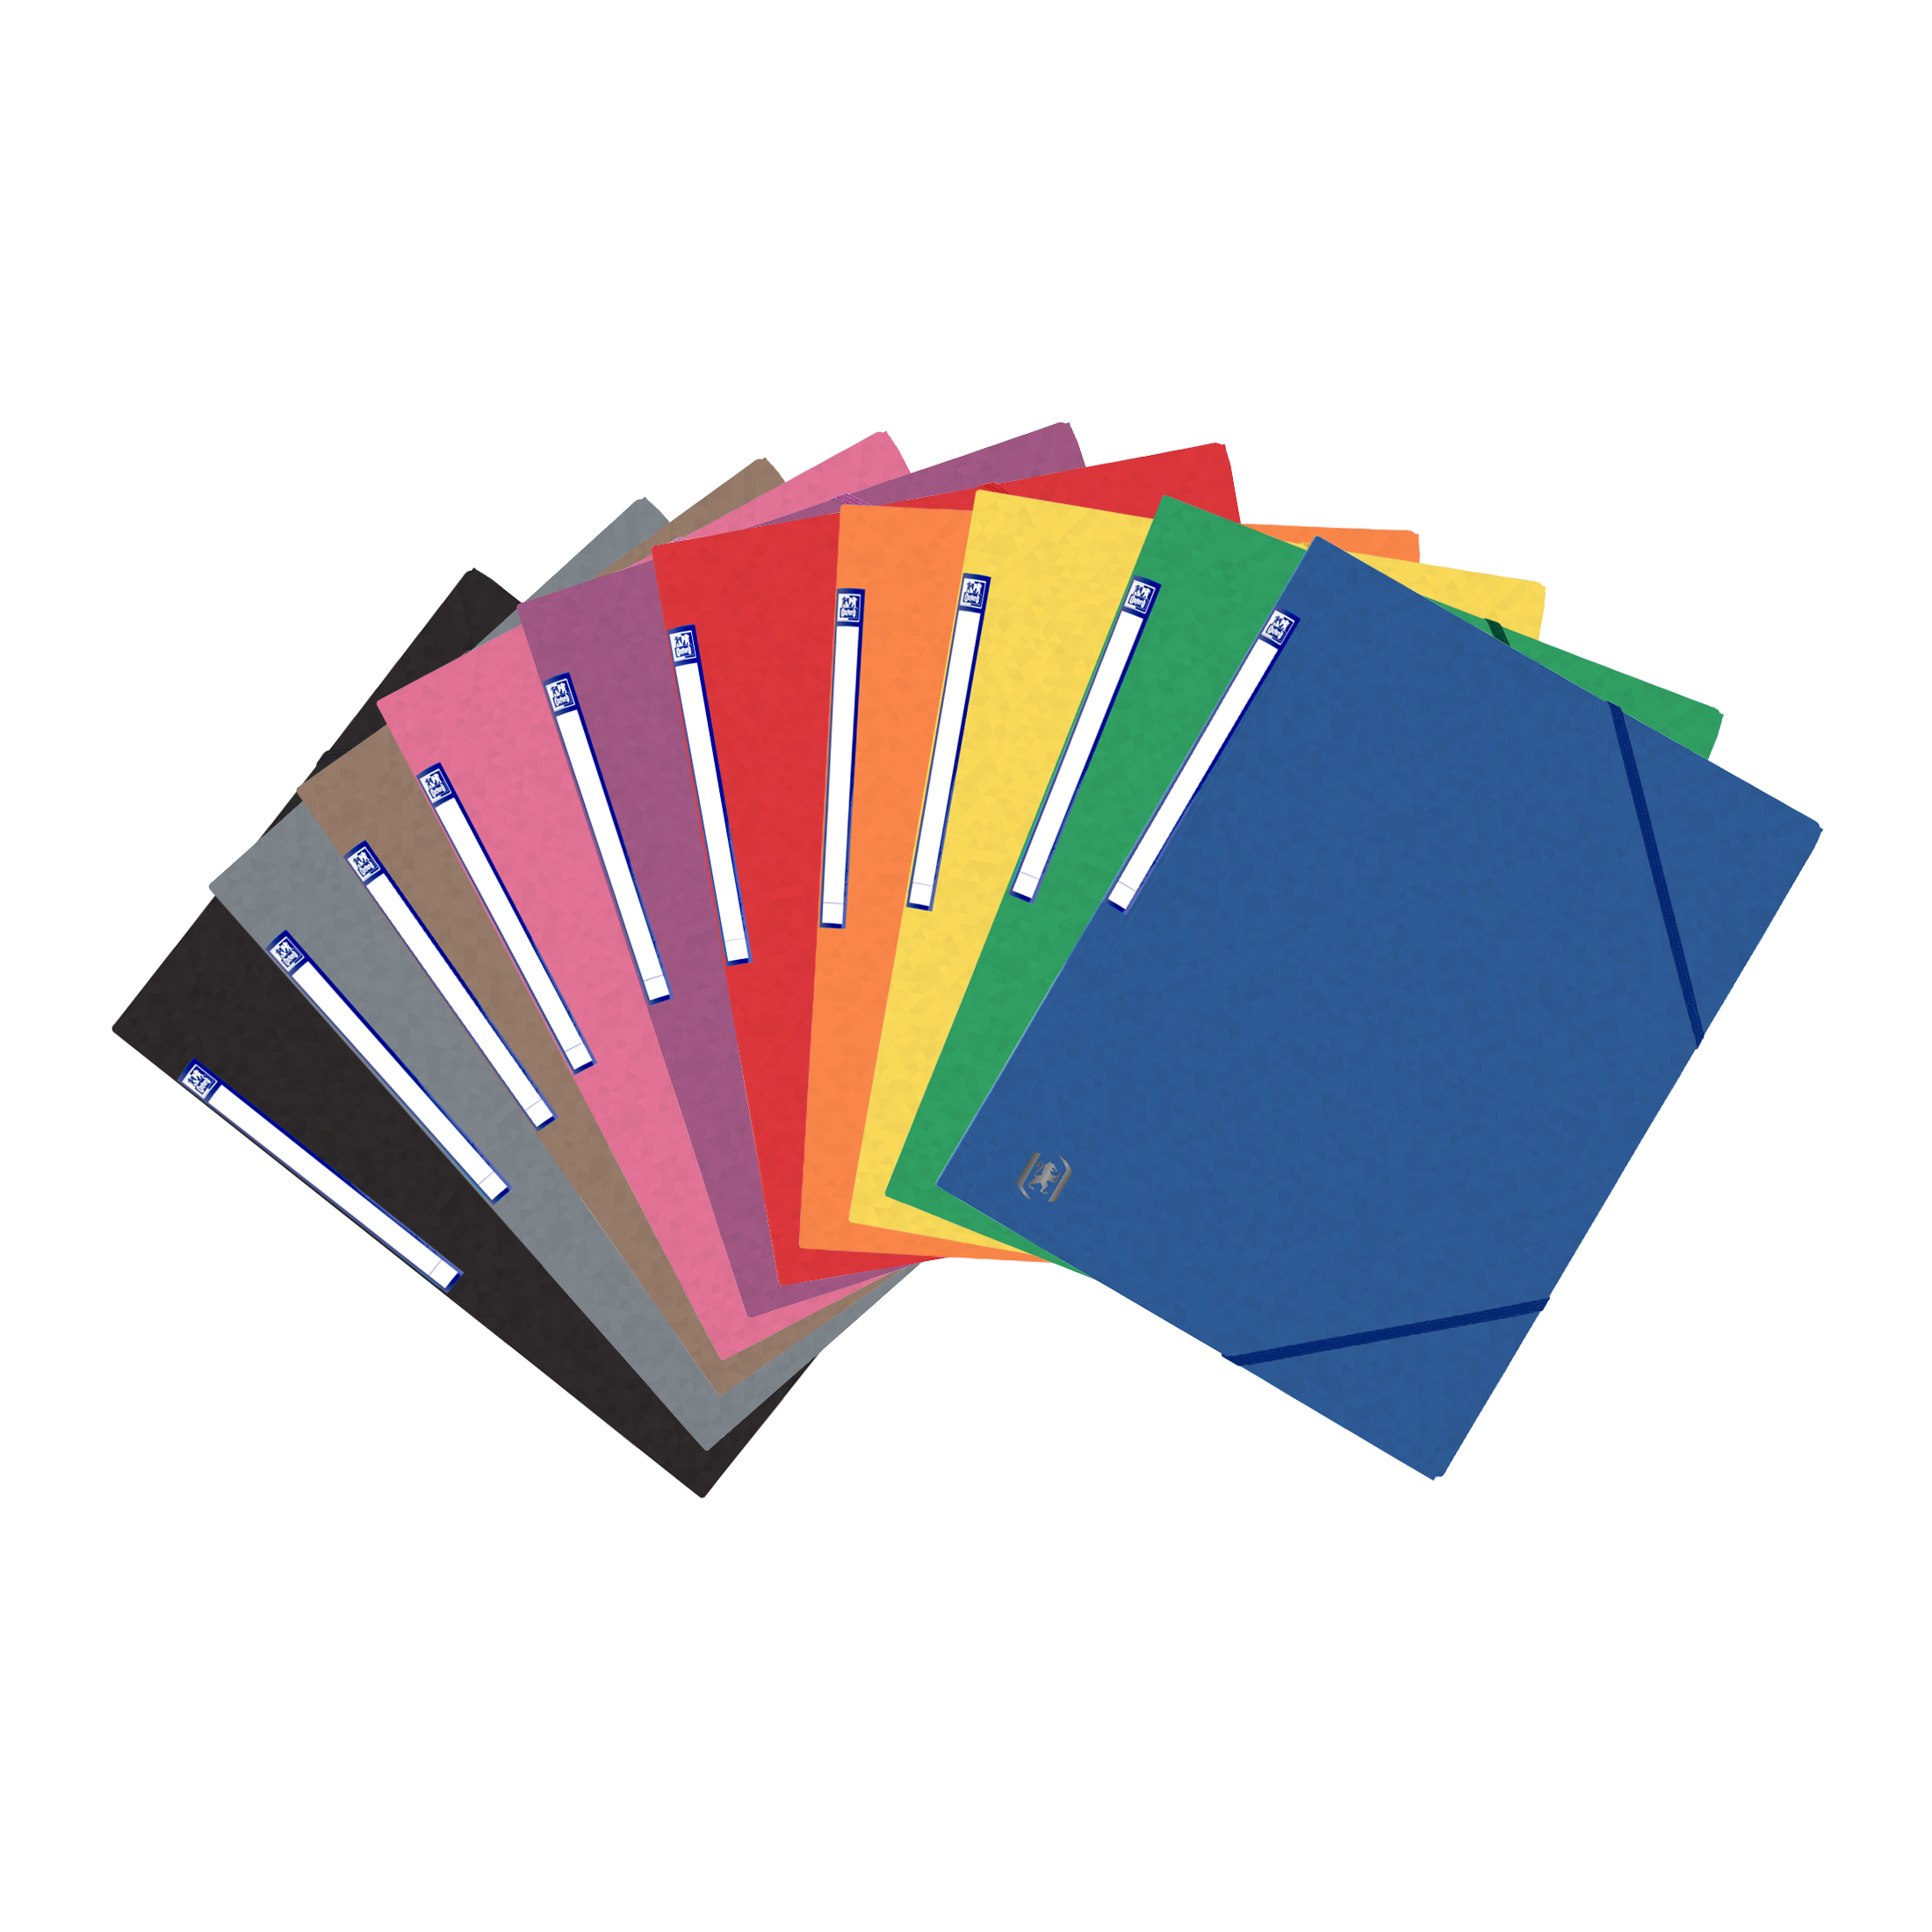 Elba Eurofolio Folder Elasticated 3-Flap 450gsm A4 Assorted Ref 100200976 Pack 10